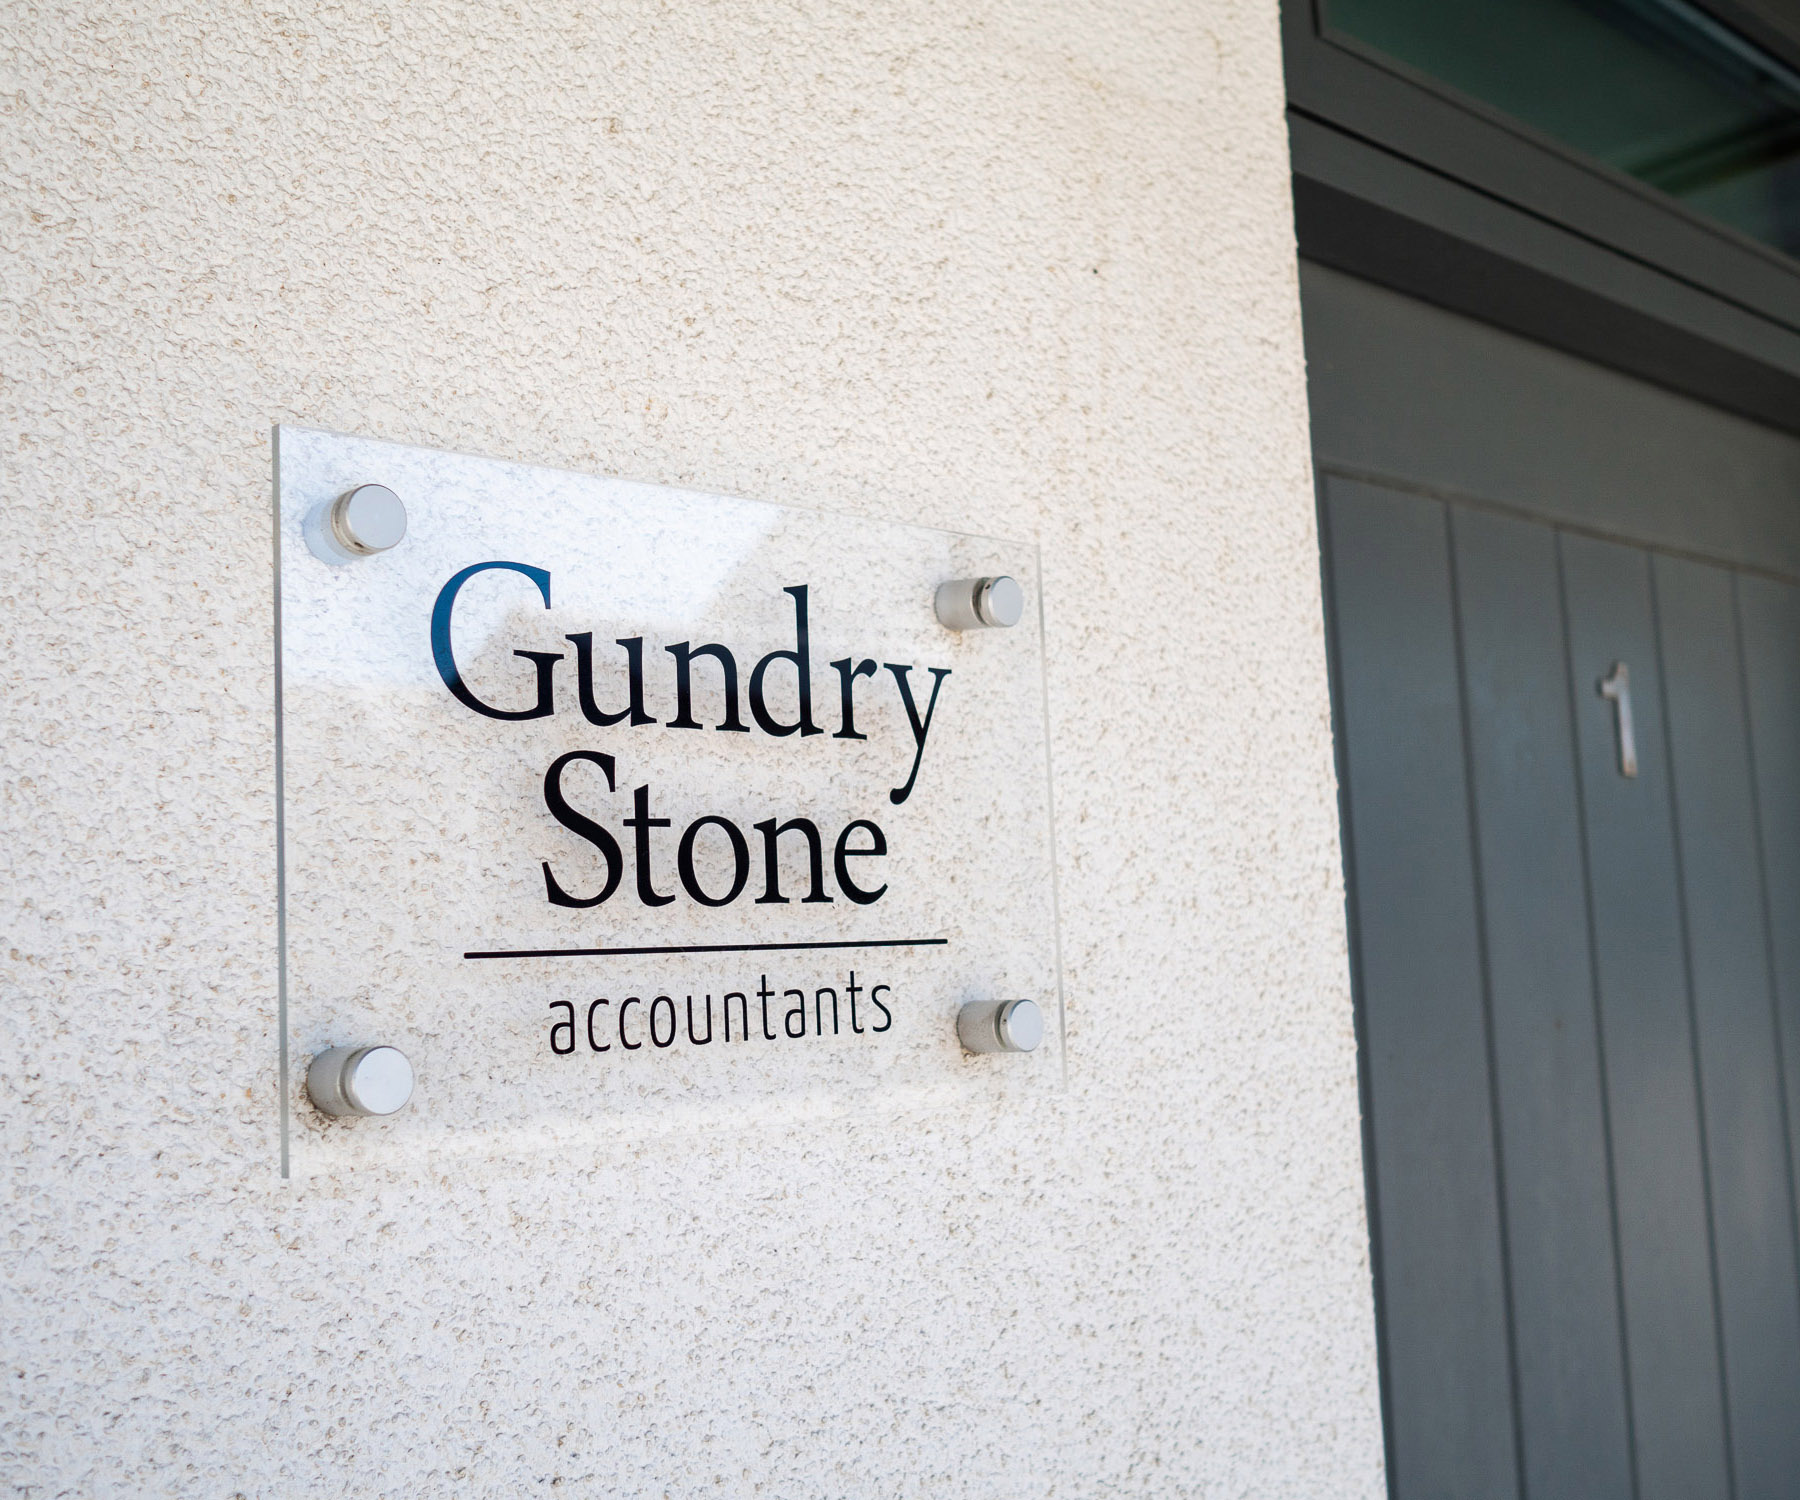 Gundry Stone Accountants